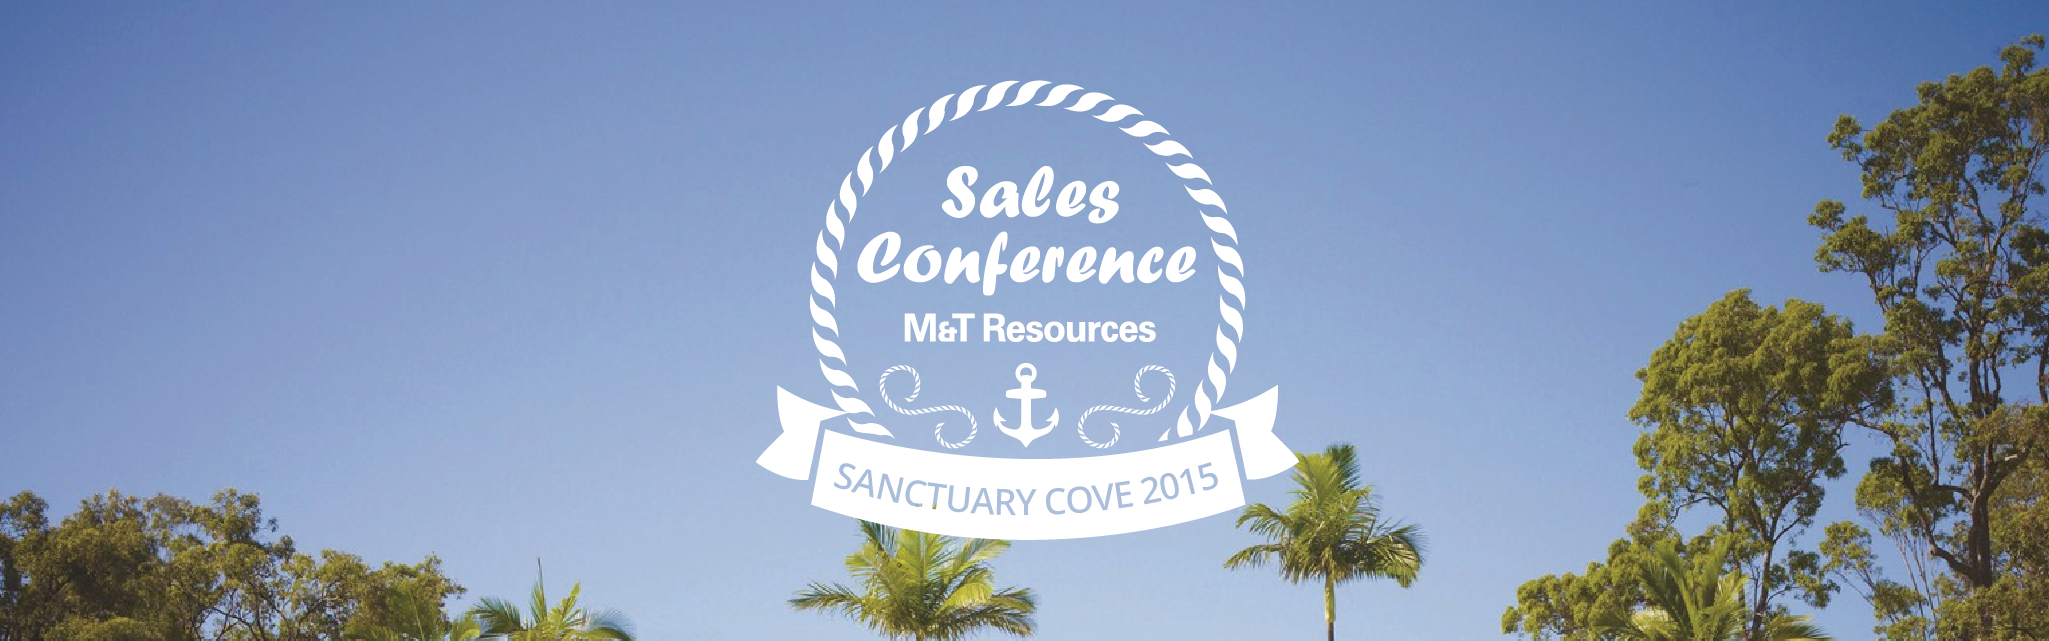 M&T Resources Sales Conference 2015: Great cause for celebrations